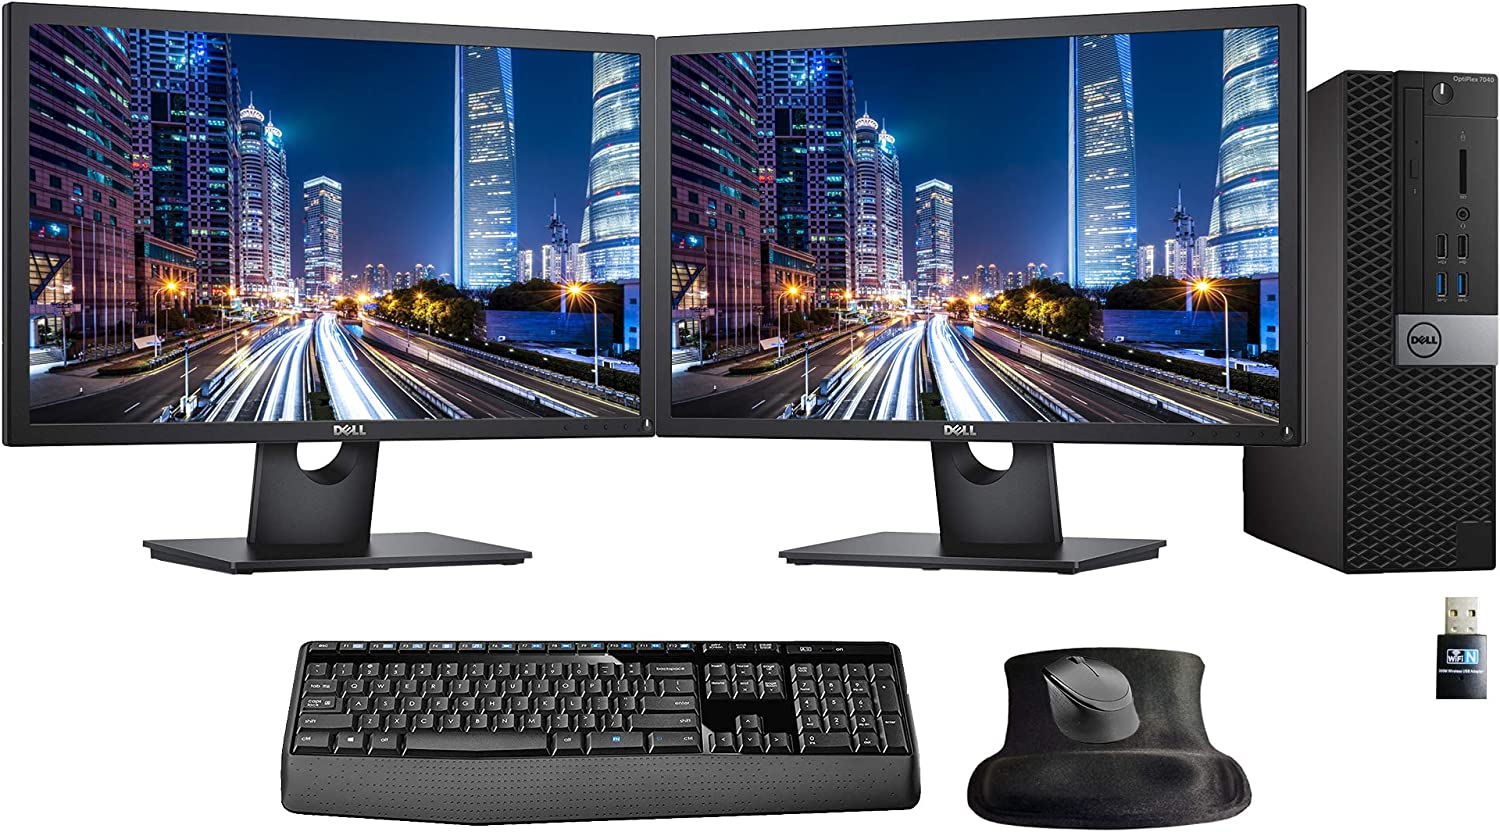 Dell Optiplex 7040 Small Form Factor Desktop Bundle with Intel i7, 16GB, 500GB SSD, 2 x 24in Monitors, WiFi, Windows 10 Pro (Renewed)